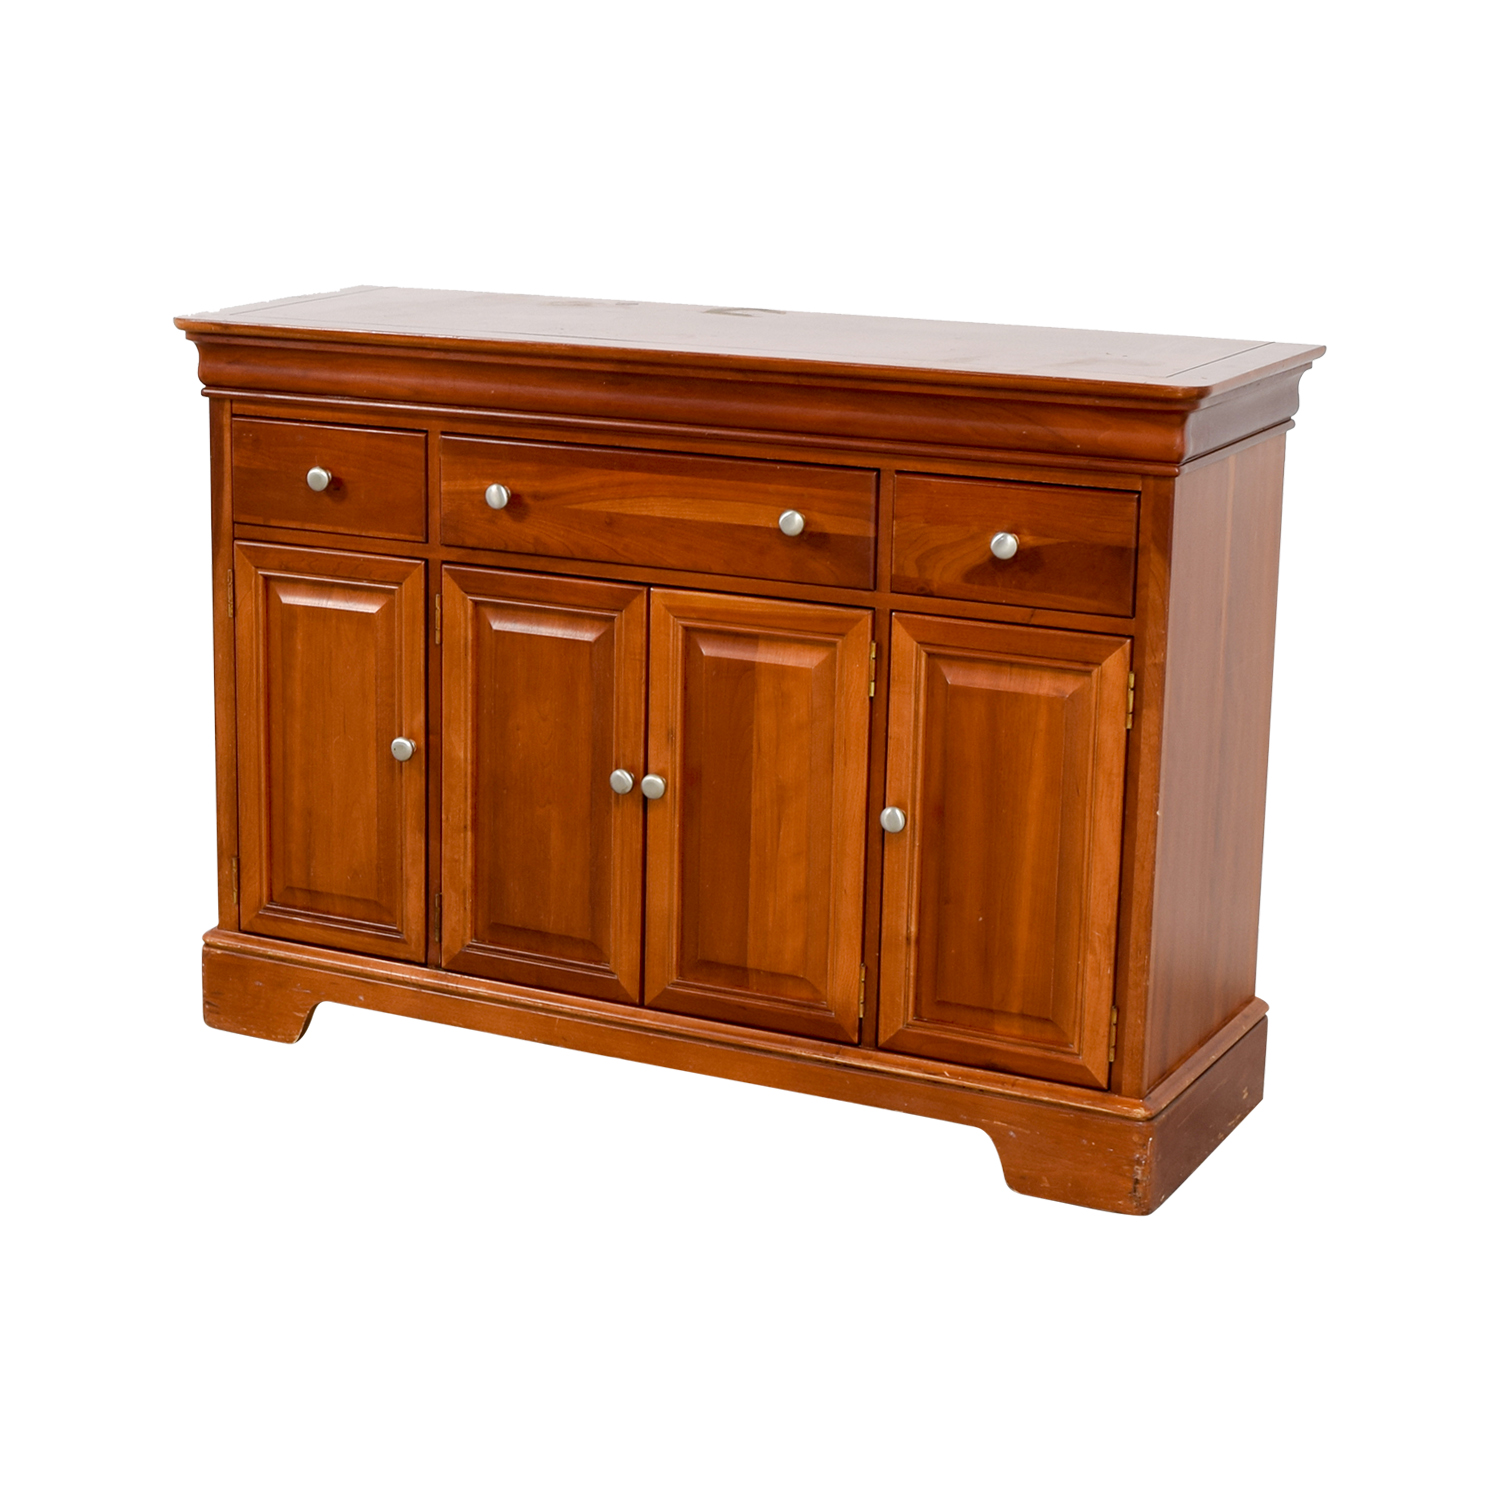 Stanley Furniture Stanley Furniture Wood Foyer Cabinet with Drawers Brown